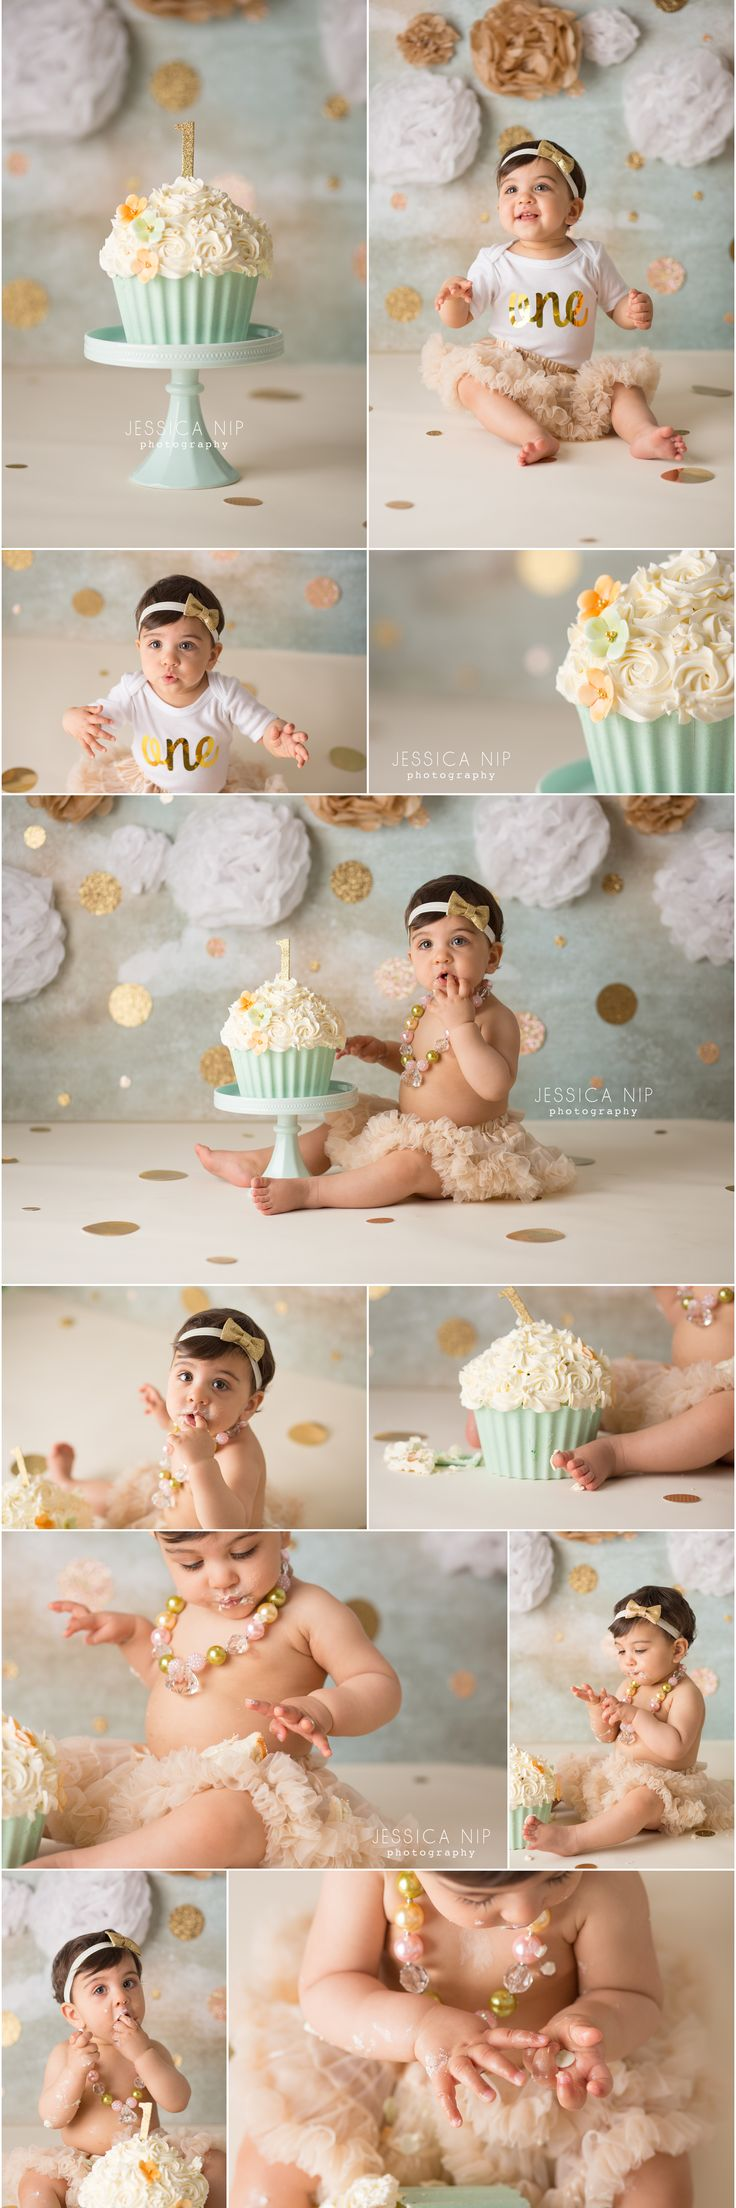 First birthday cake smash | Jessica Nip Photography | @2015 www.jessicanip.com…